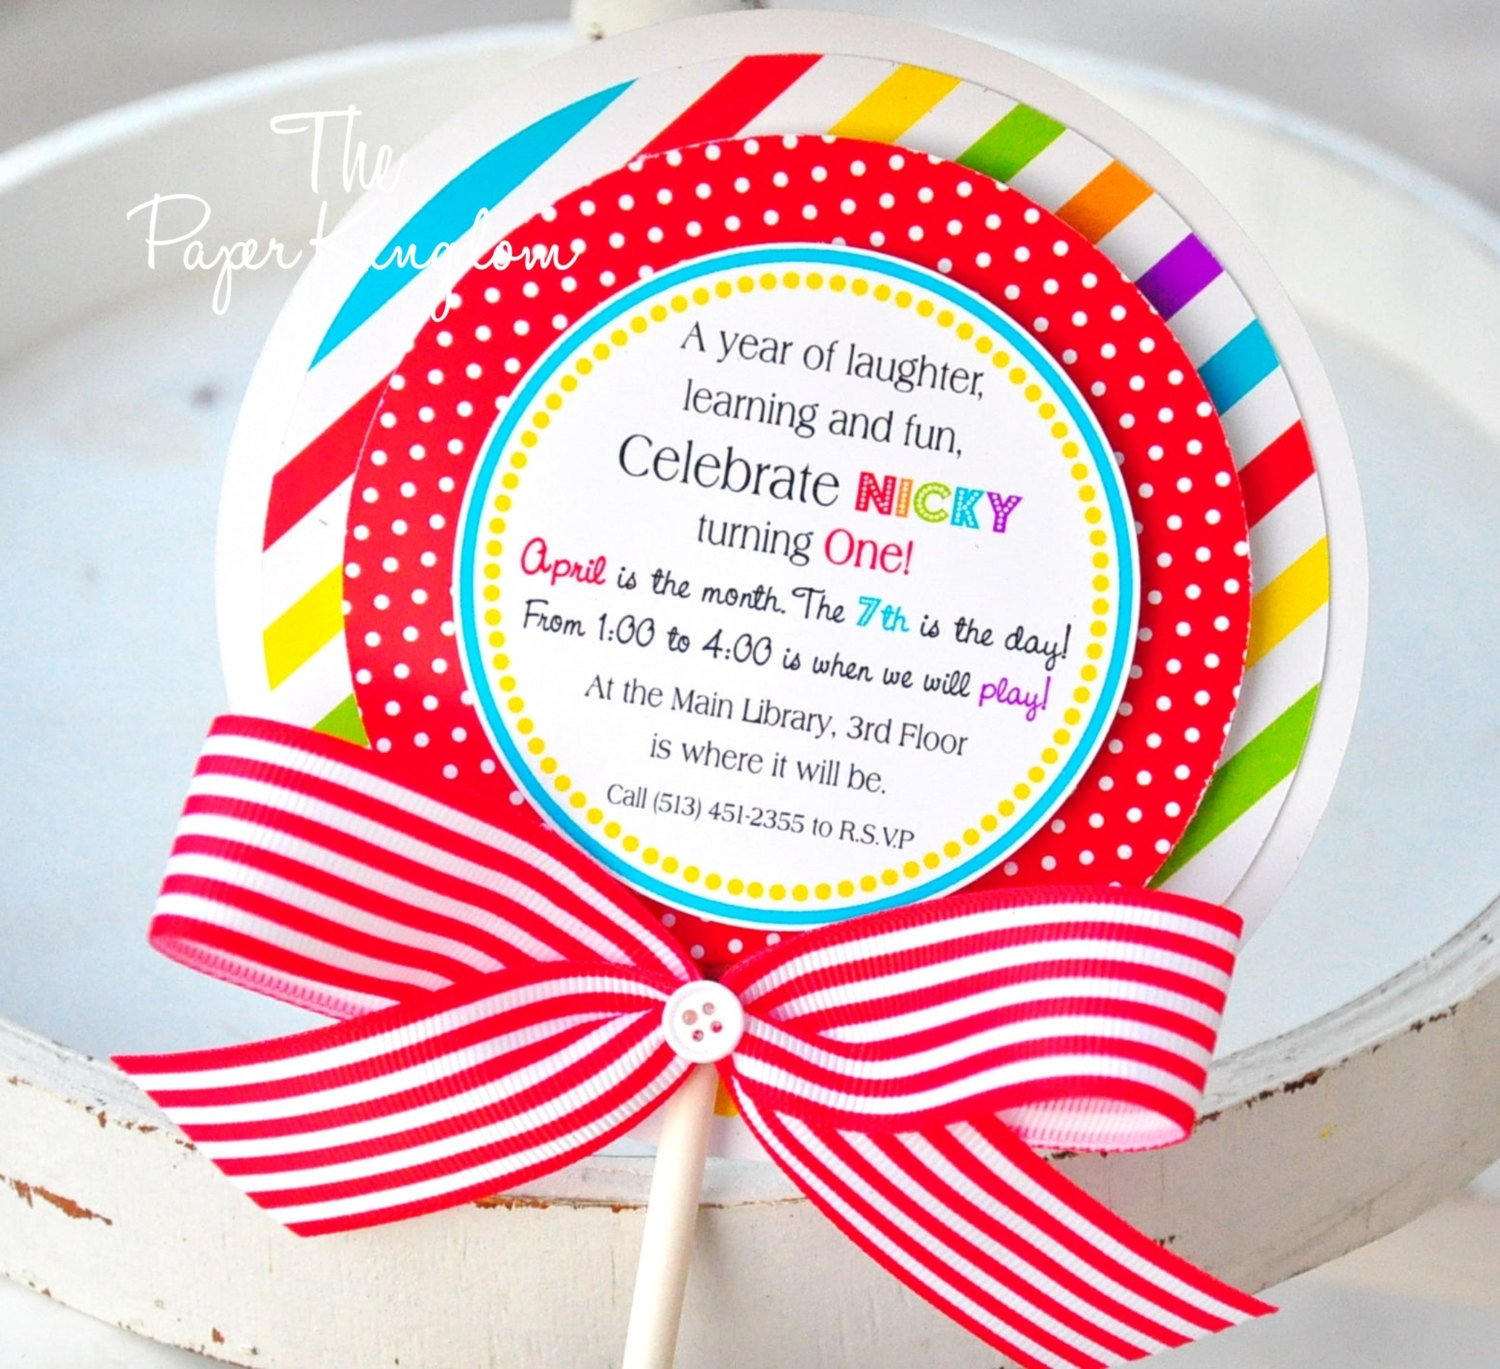 Candyland Party Invitations is luxury invitations layout